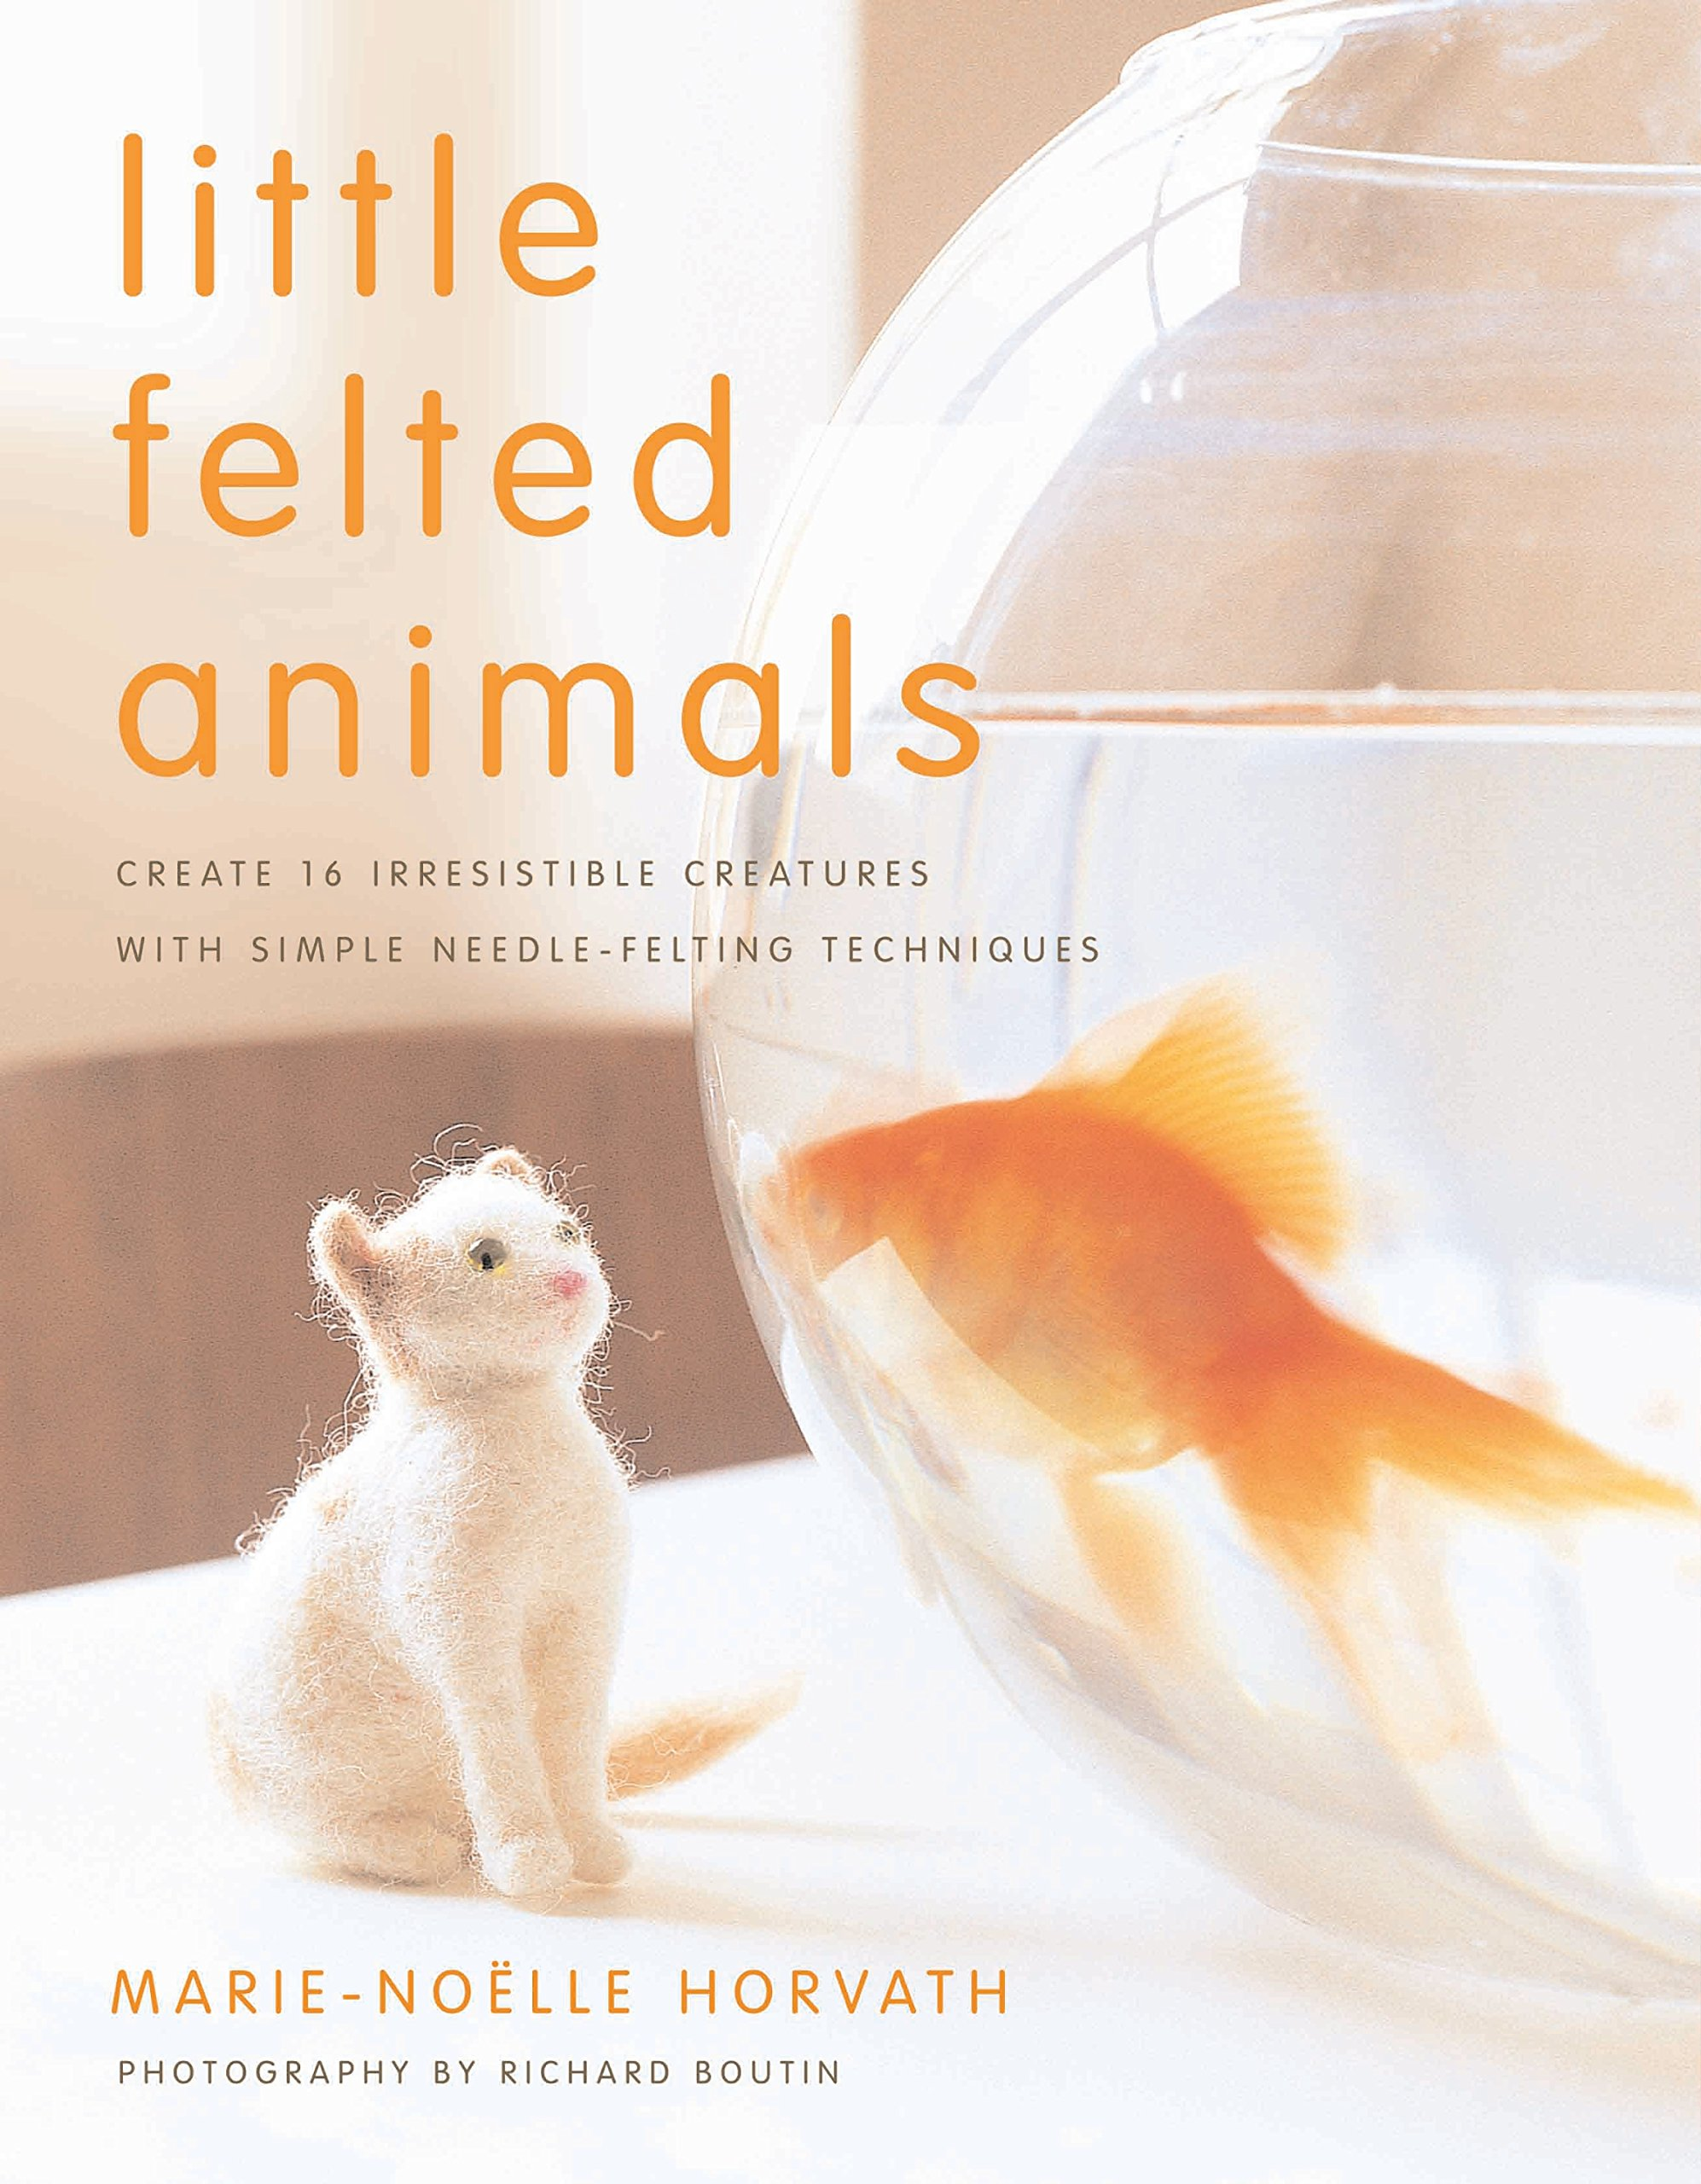 little-felted-animals-create-16-irresistible-creatures-with-simple-needle-felting-techniques